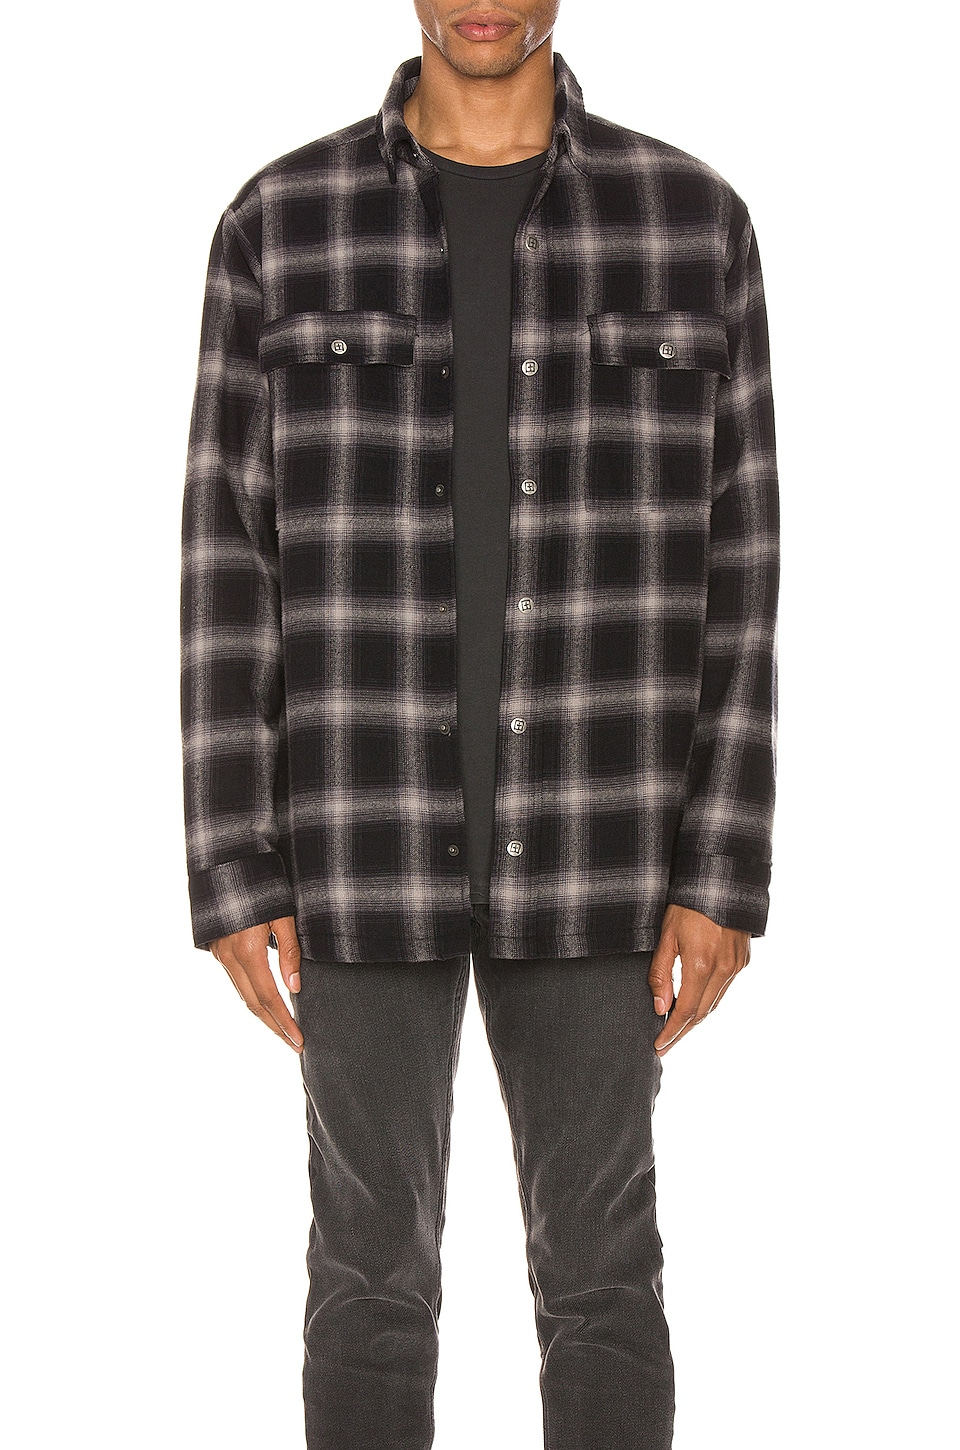 Ksubi Strata Quilted Check Shirt in Multi